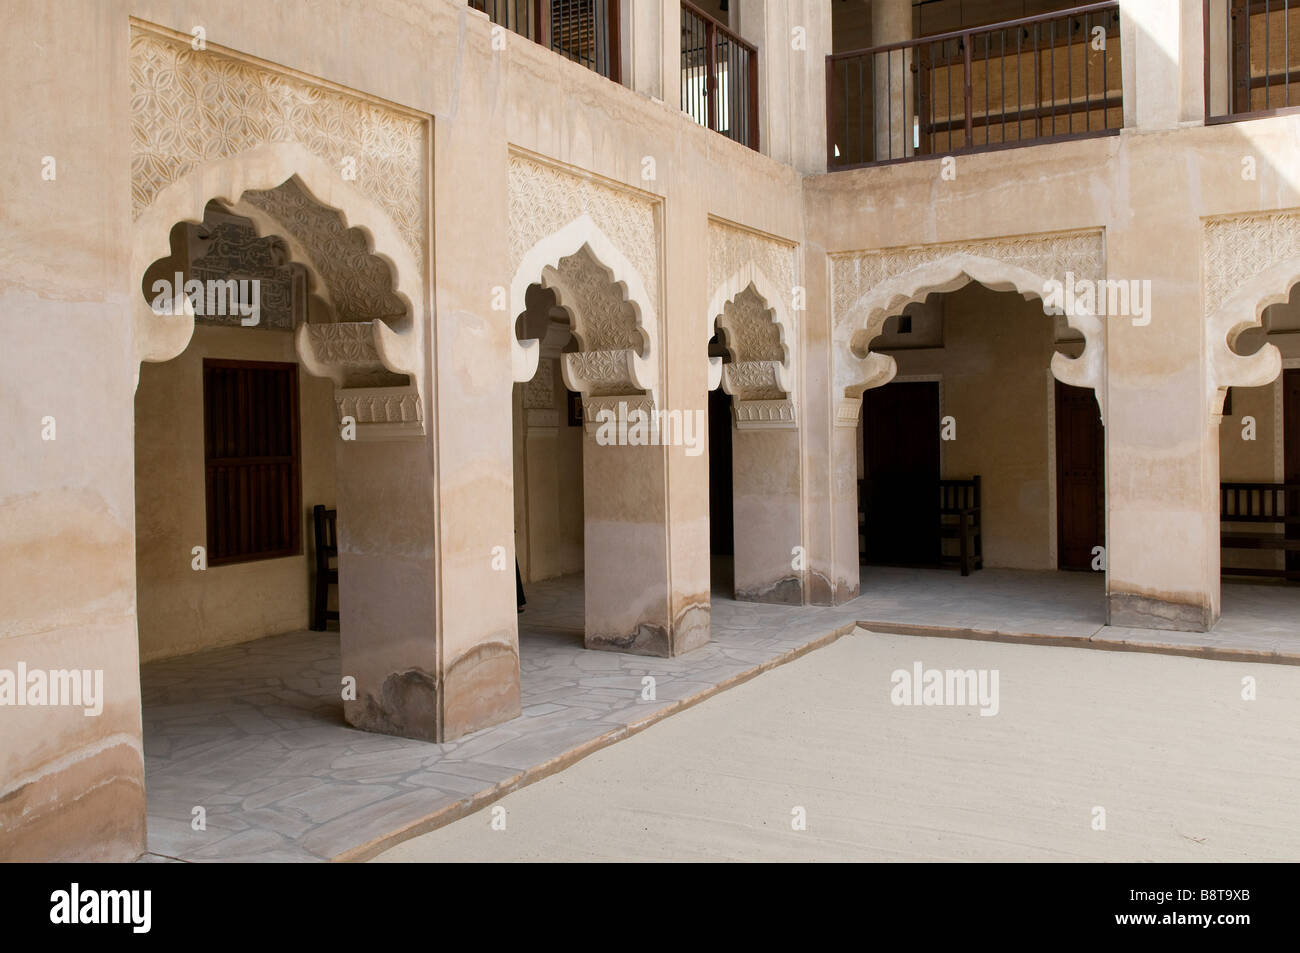 Traditional Arabic House Museum Dubai Uae Stock Photo Royalty Free Image 22662259 Alamy